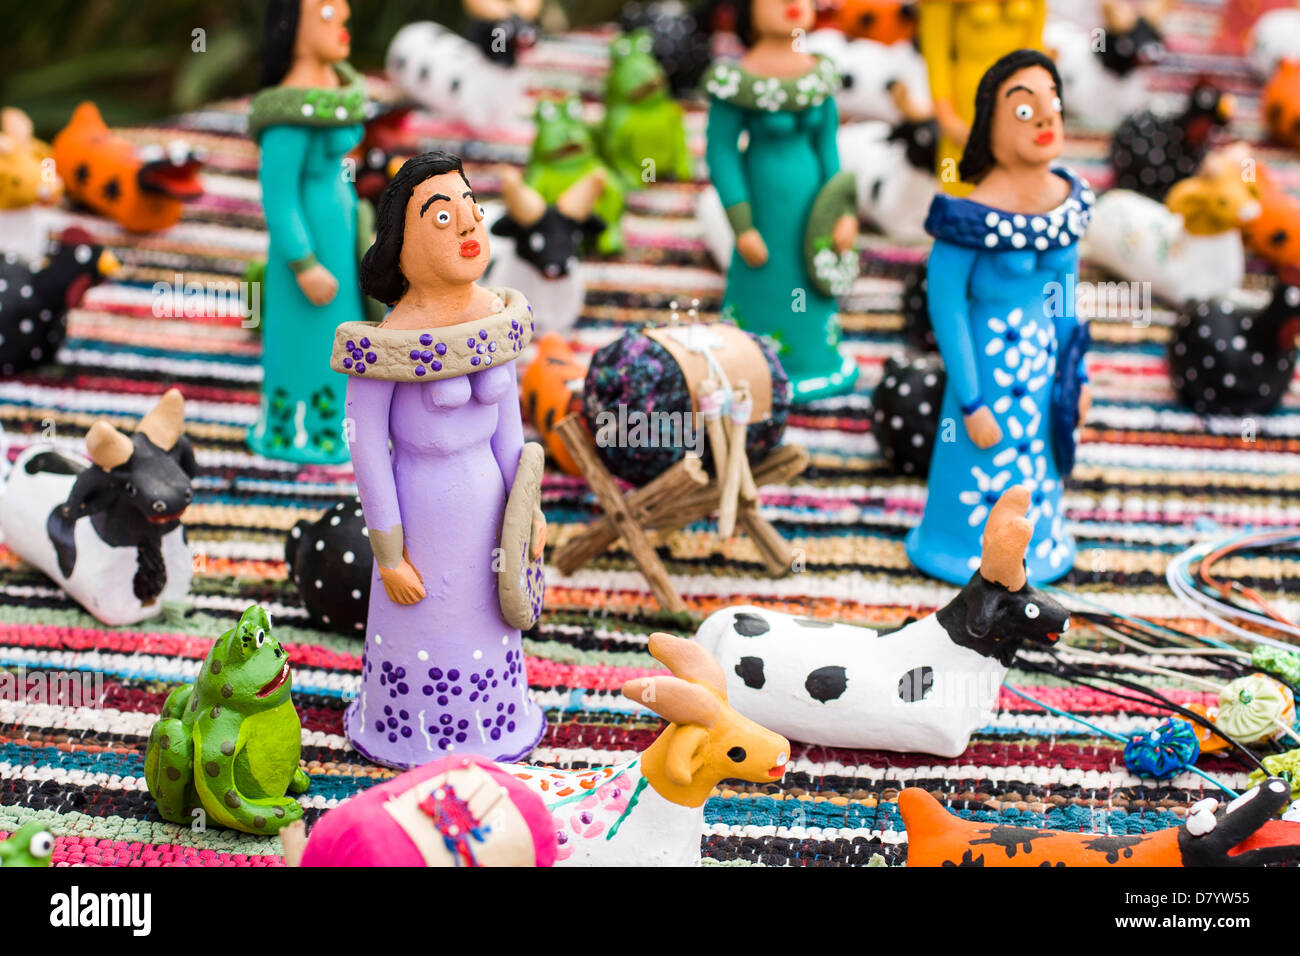 Typical handcraft figurines from Florianopolis. - Stock Image